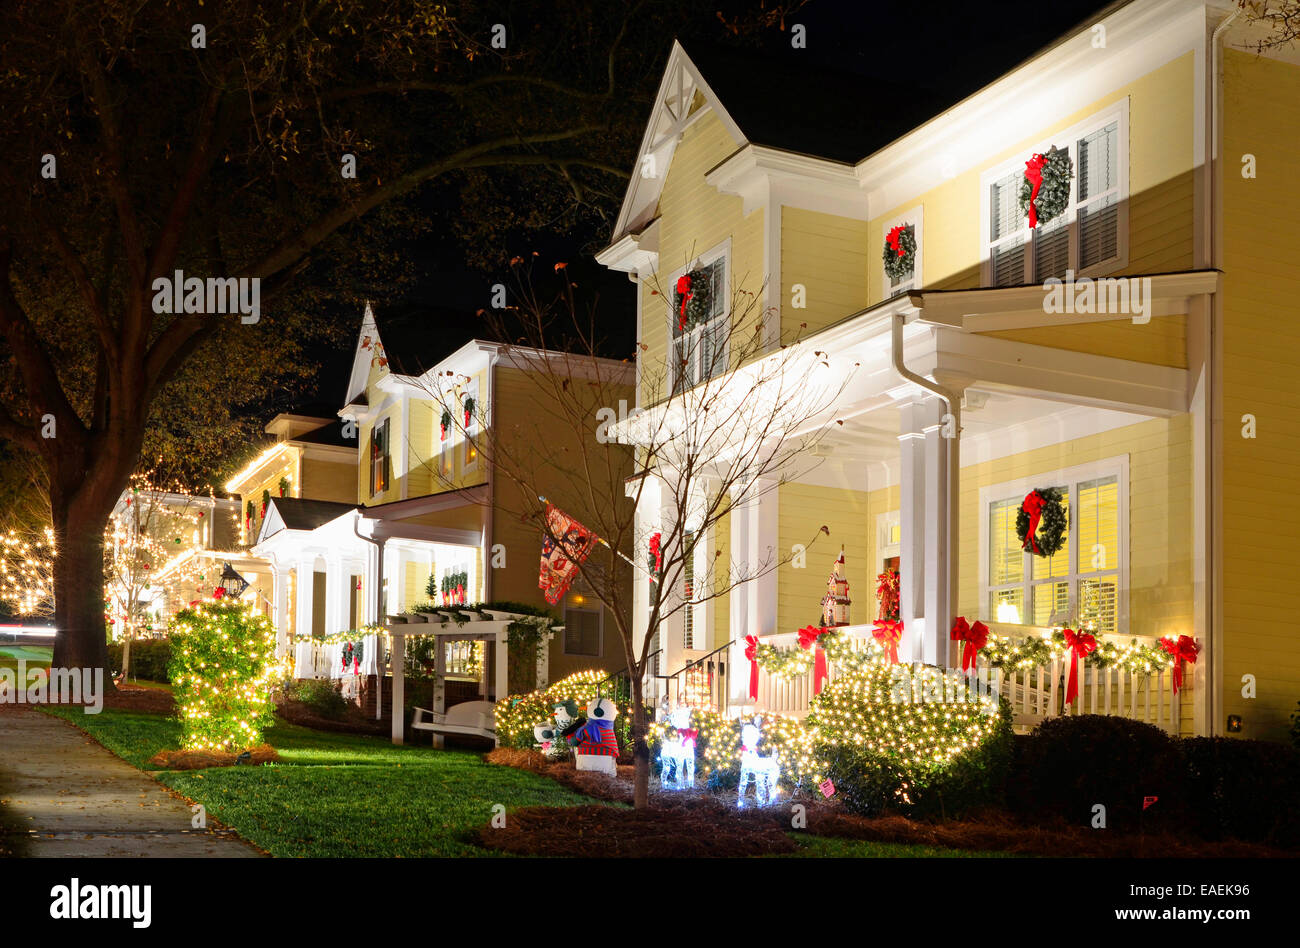 These Traditional, Victorian Style Homes In A Christmas Town/village Are Beautifully  Decorated For The Holiday Season.